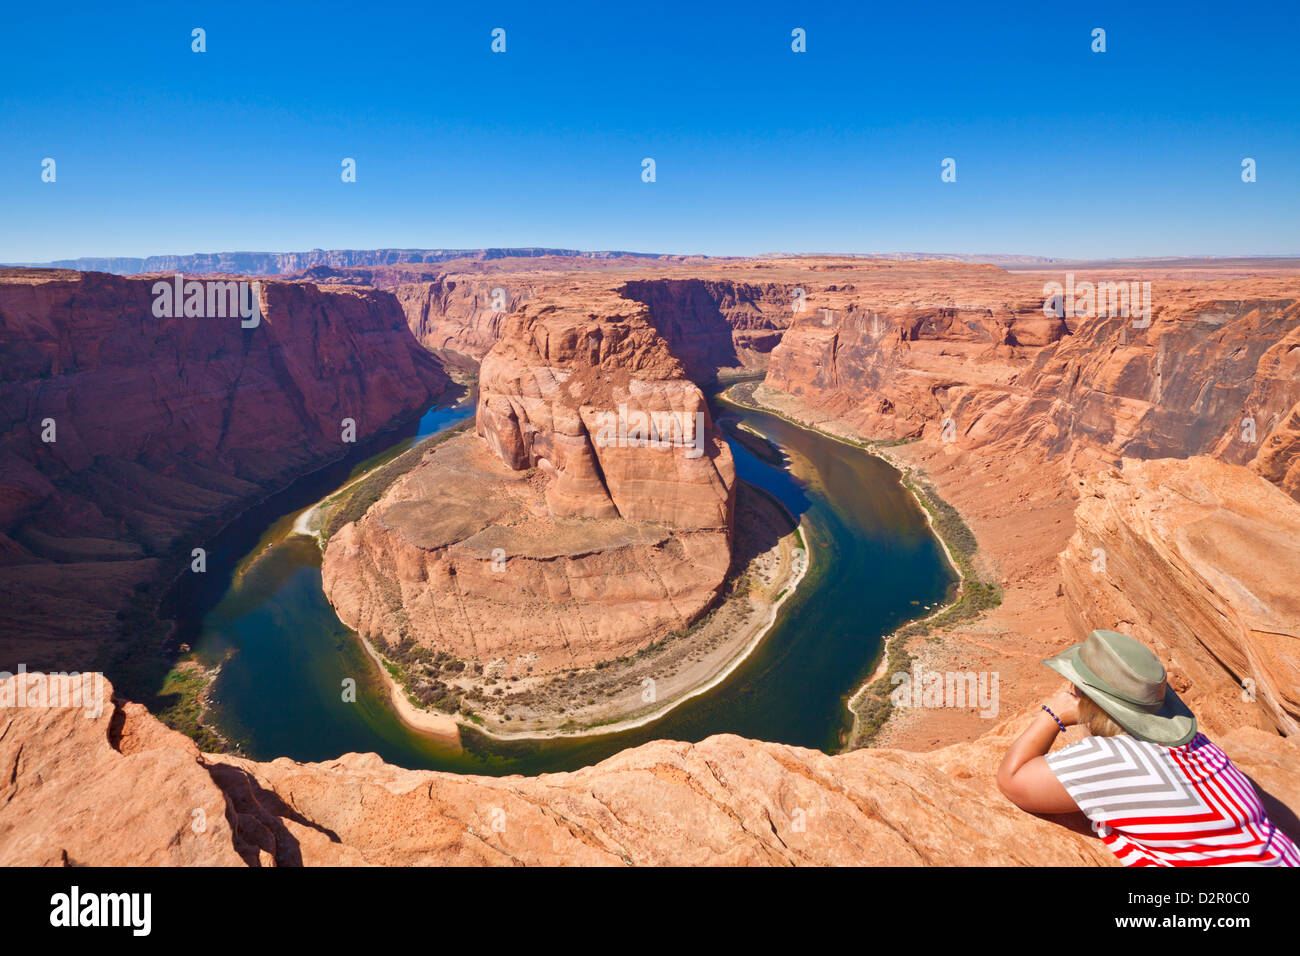 Tourist overlooking Horseshoe Bend on the Colorado River, Page, Arizona, United States of America, North America - Stock Image